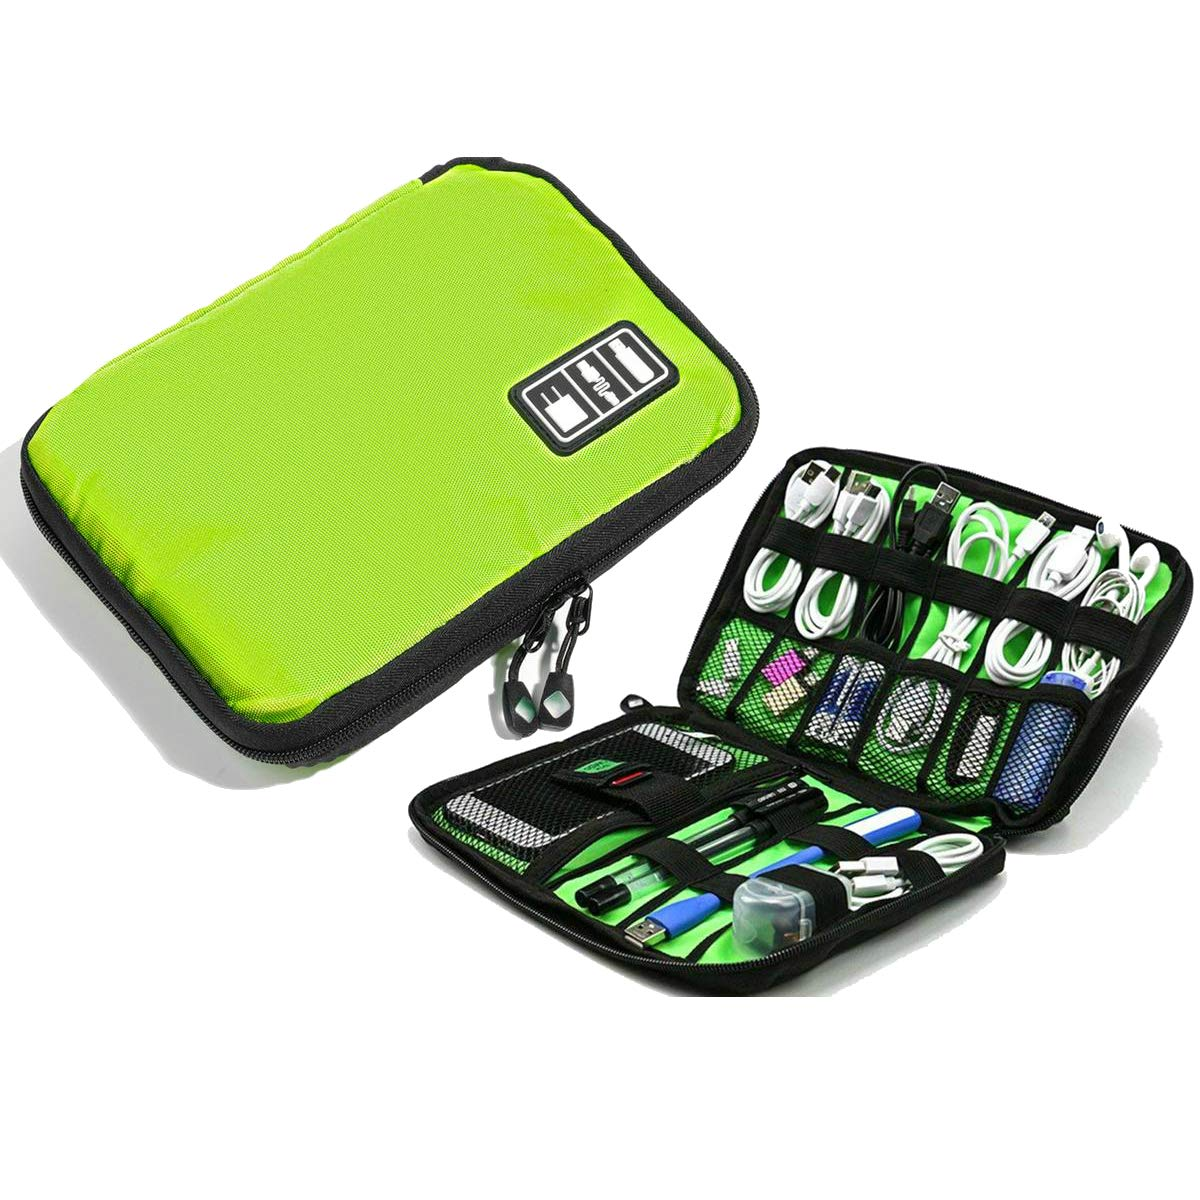 Electronics Accessories Organizer Travel Cord Organizer Bag Universal Case for Cables, Charger, USB Cable, SD Card, Hard Drive, Airpods, iWatch Water-Resistant with Double Zipper (Green)